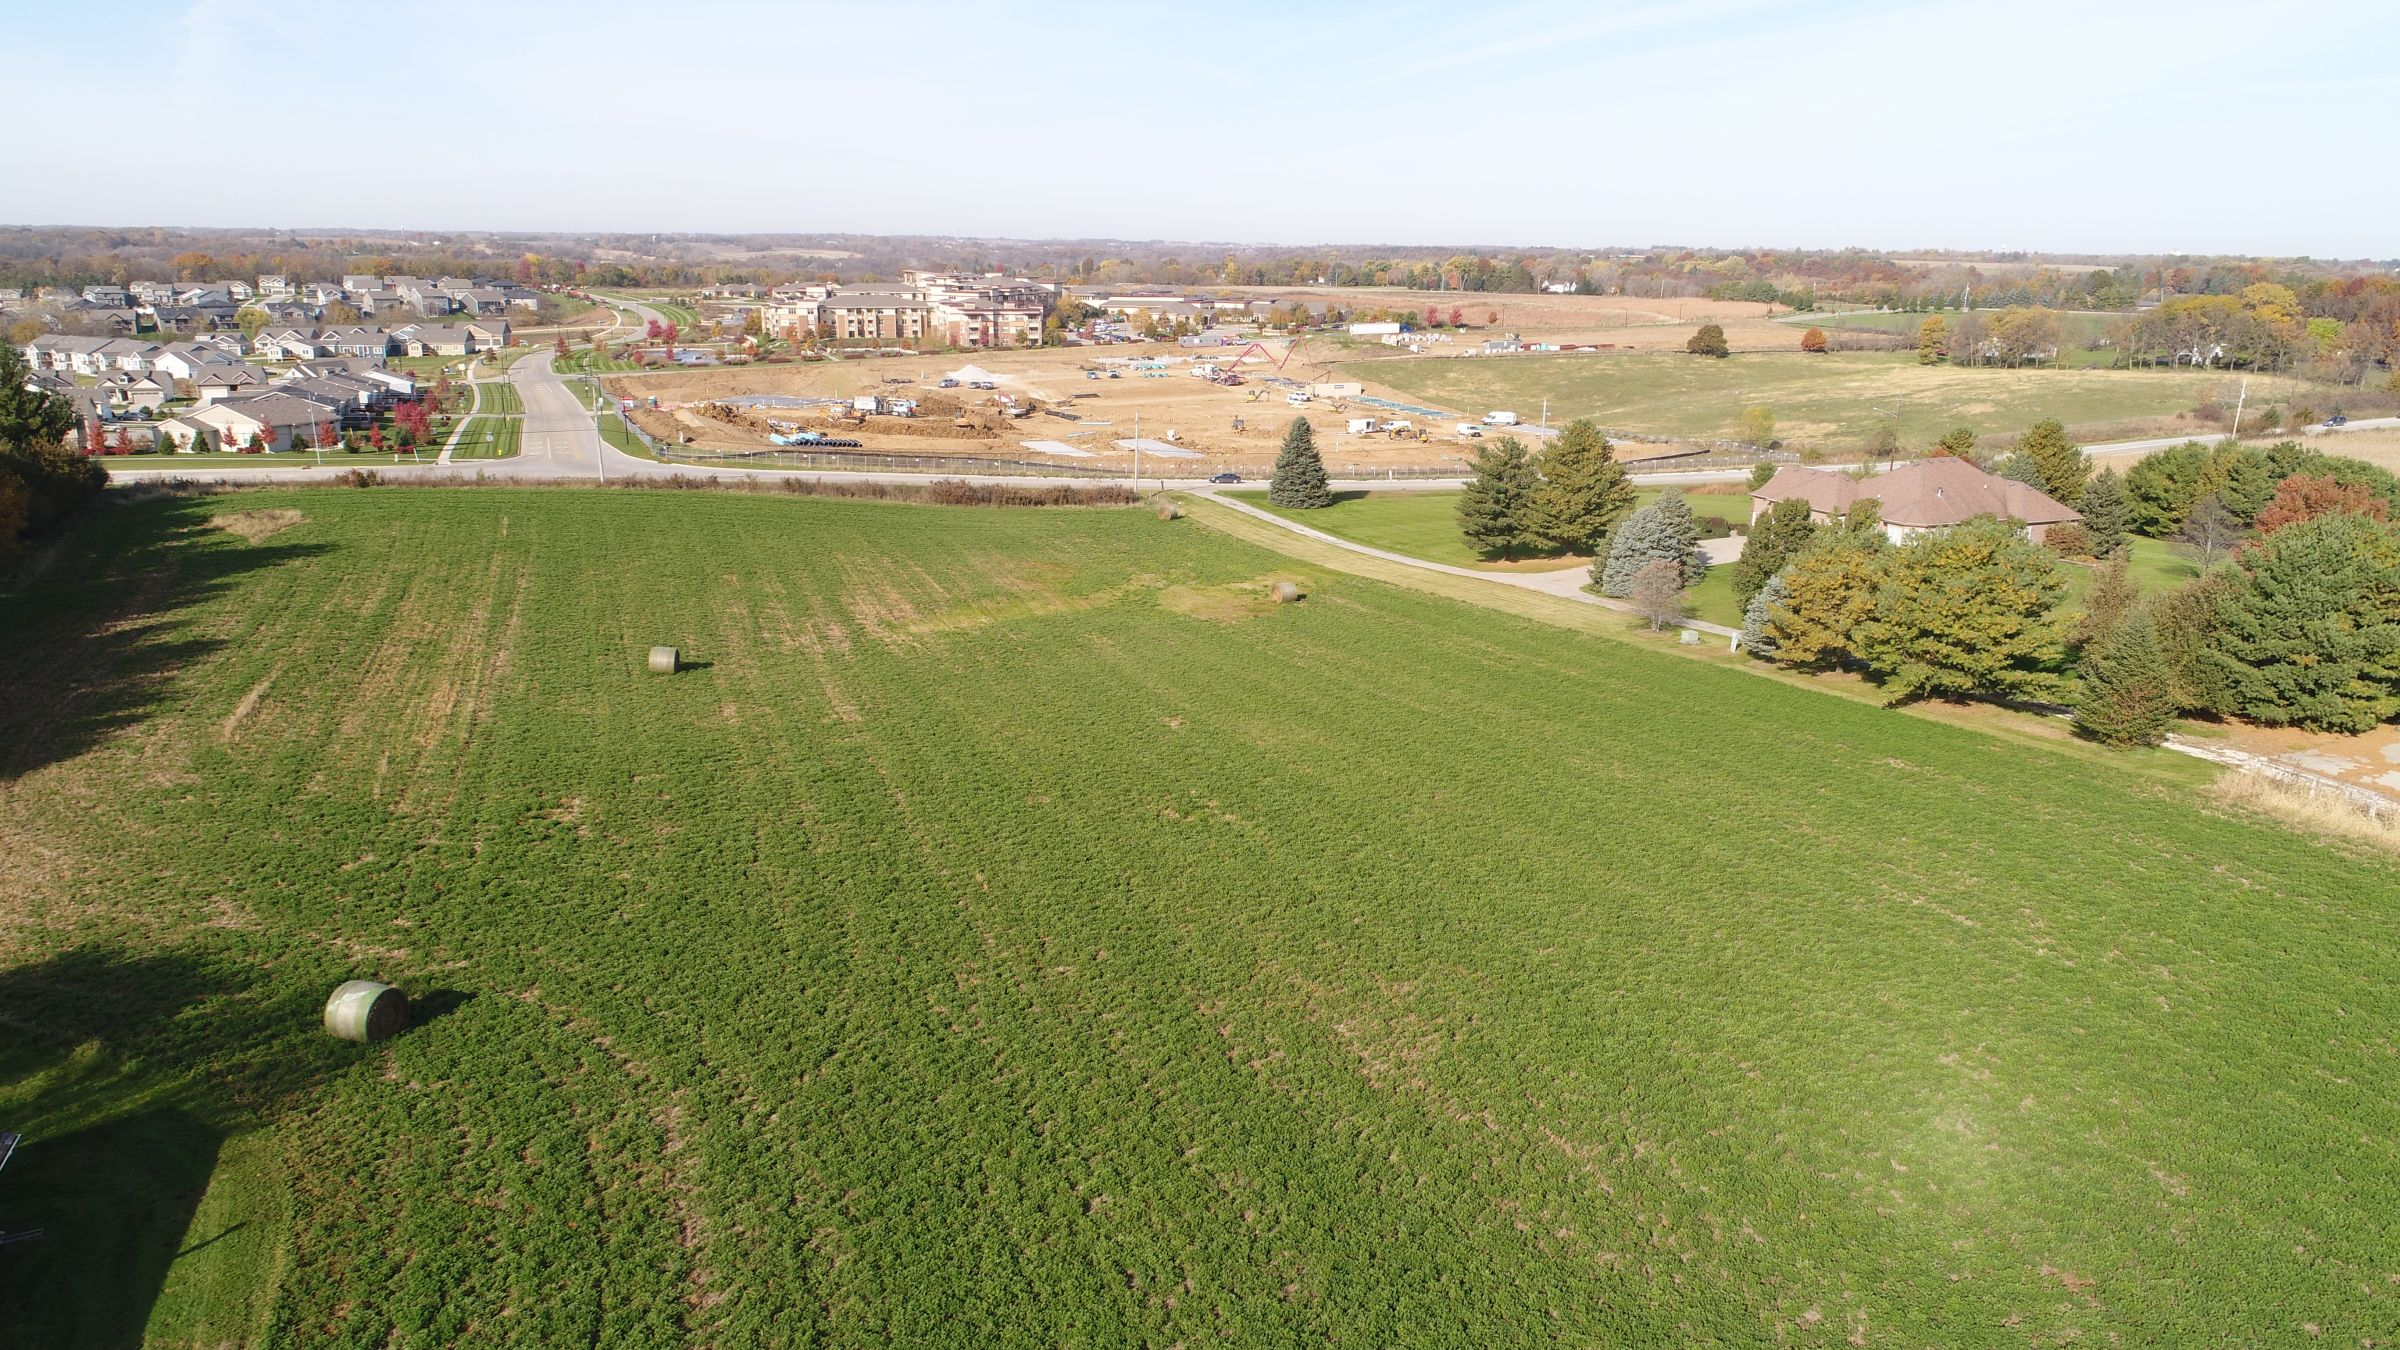 14399-multi-family-development-land-5-2018-12-04-204035.JPG